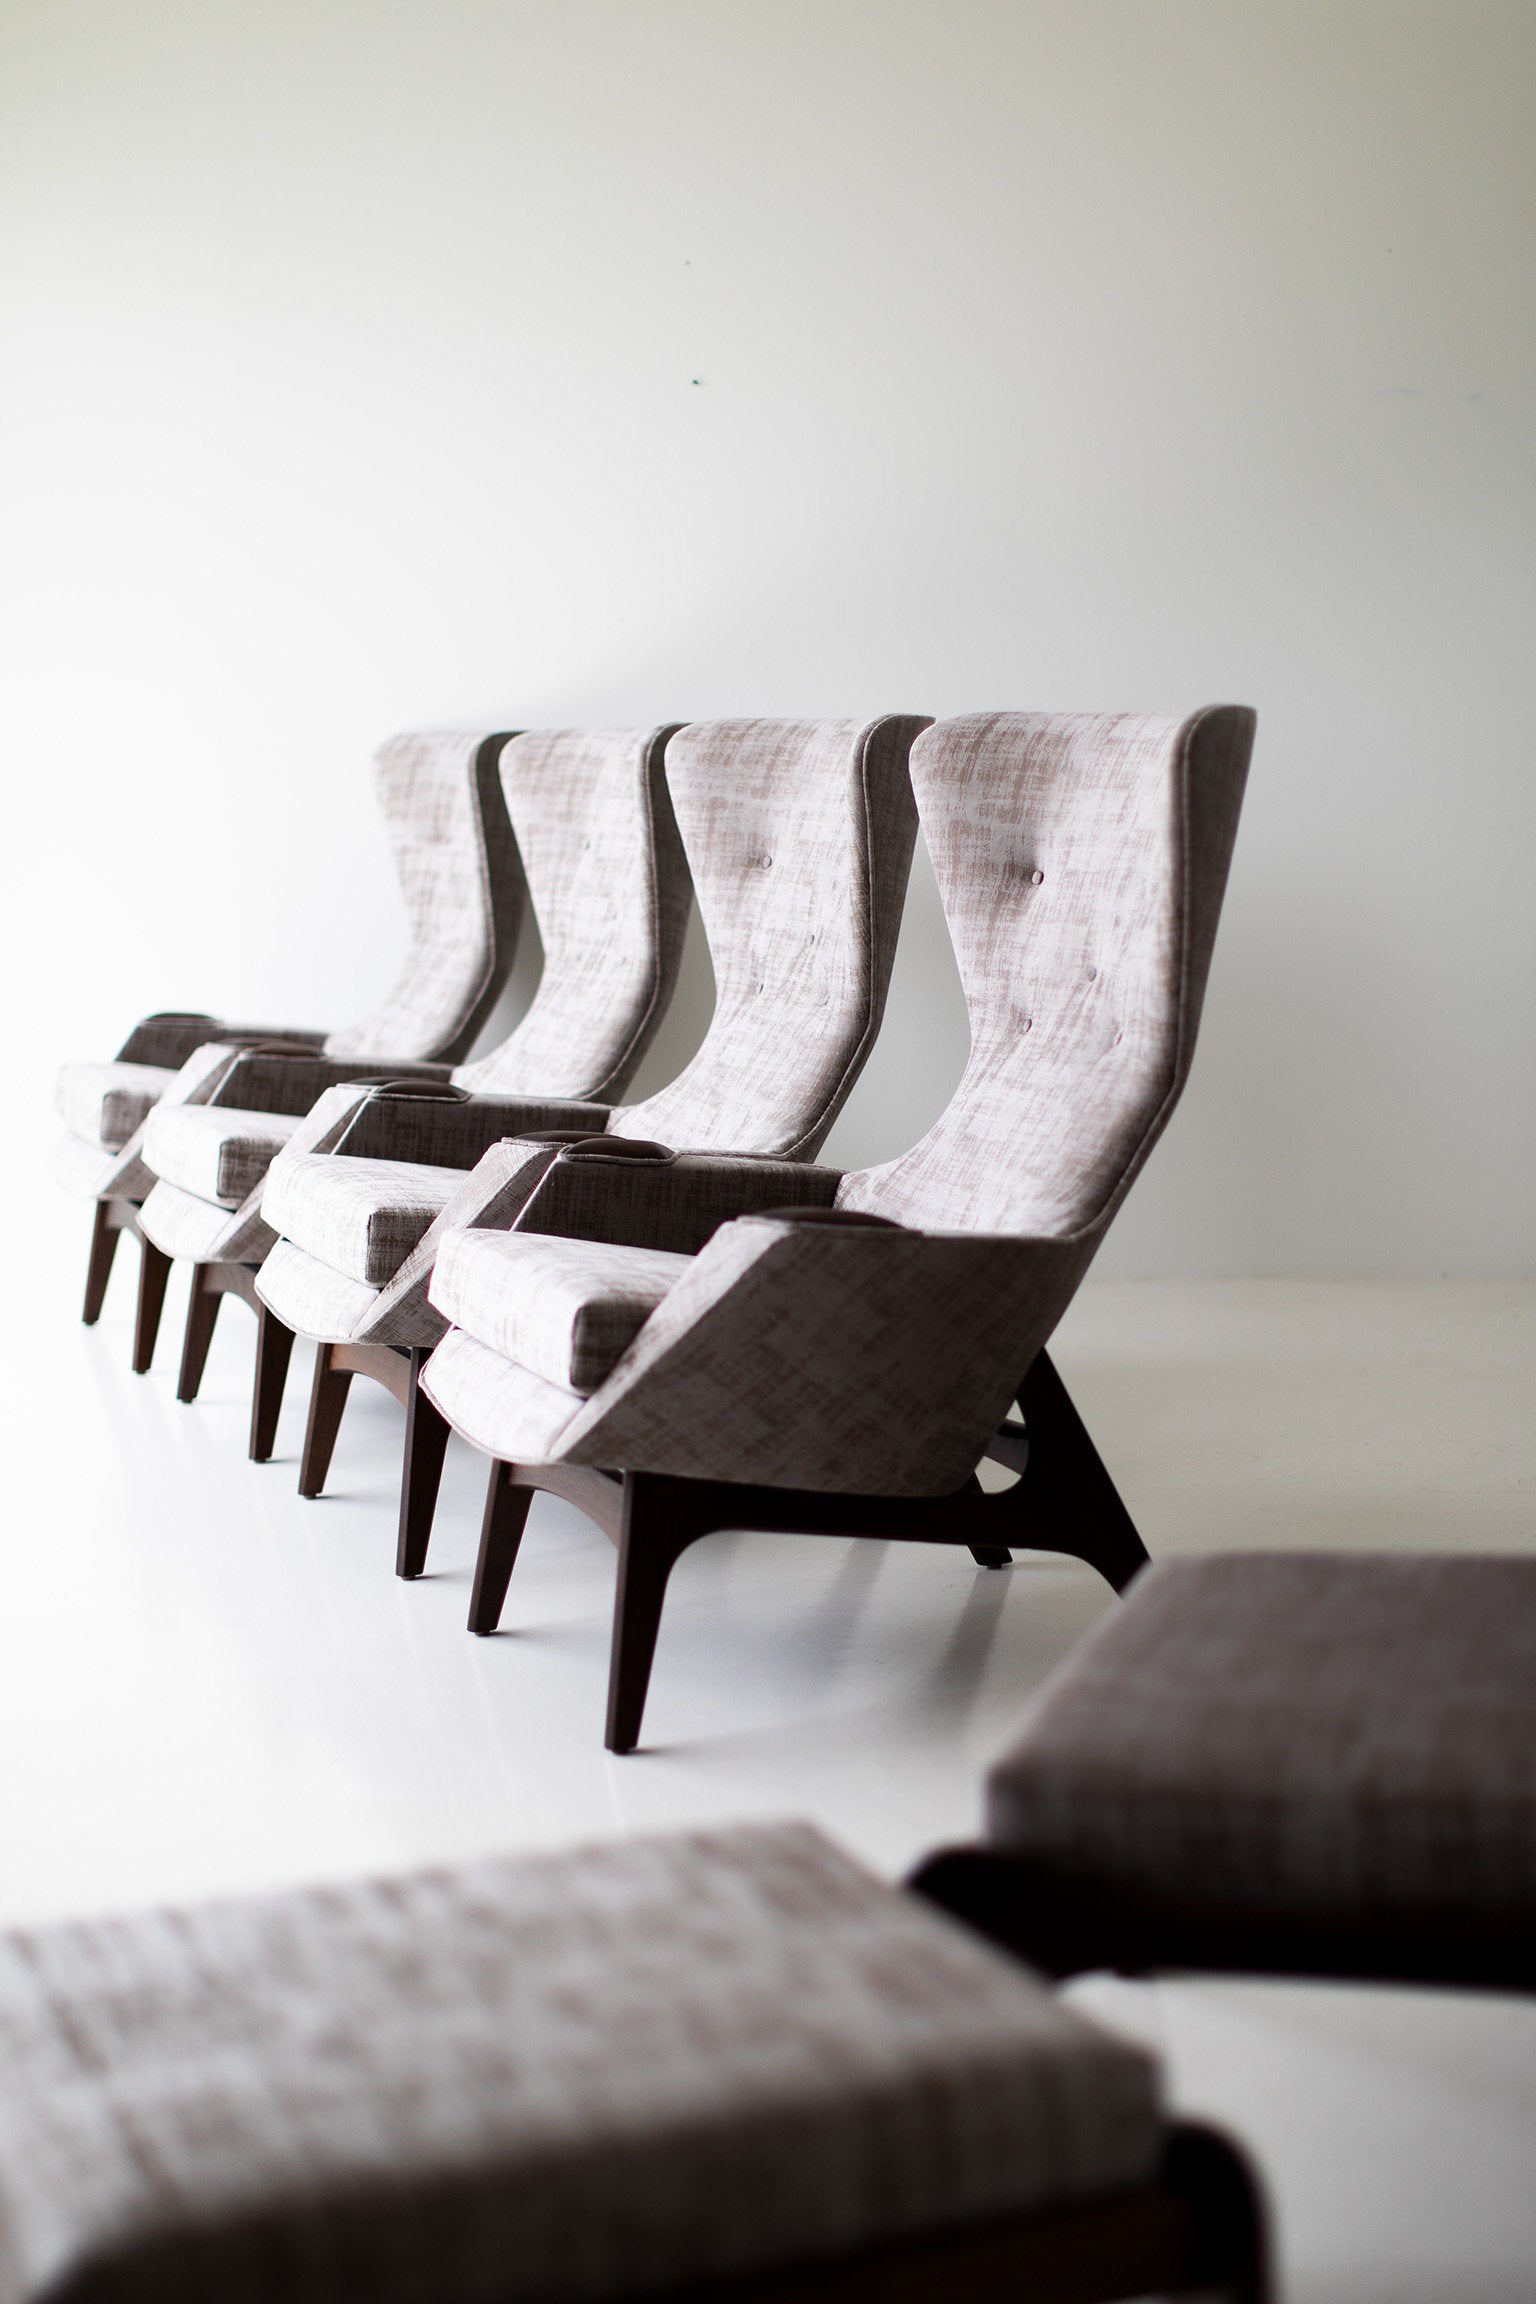 I07A4896-Small-Wing-Chairs-1410-01